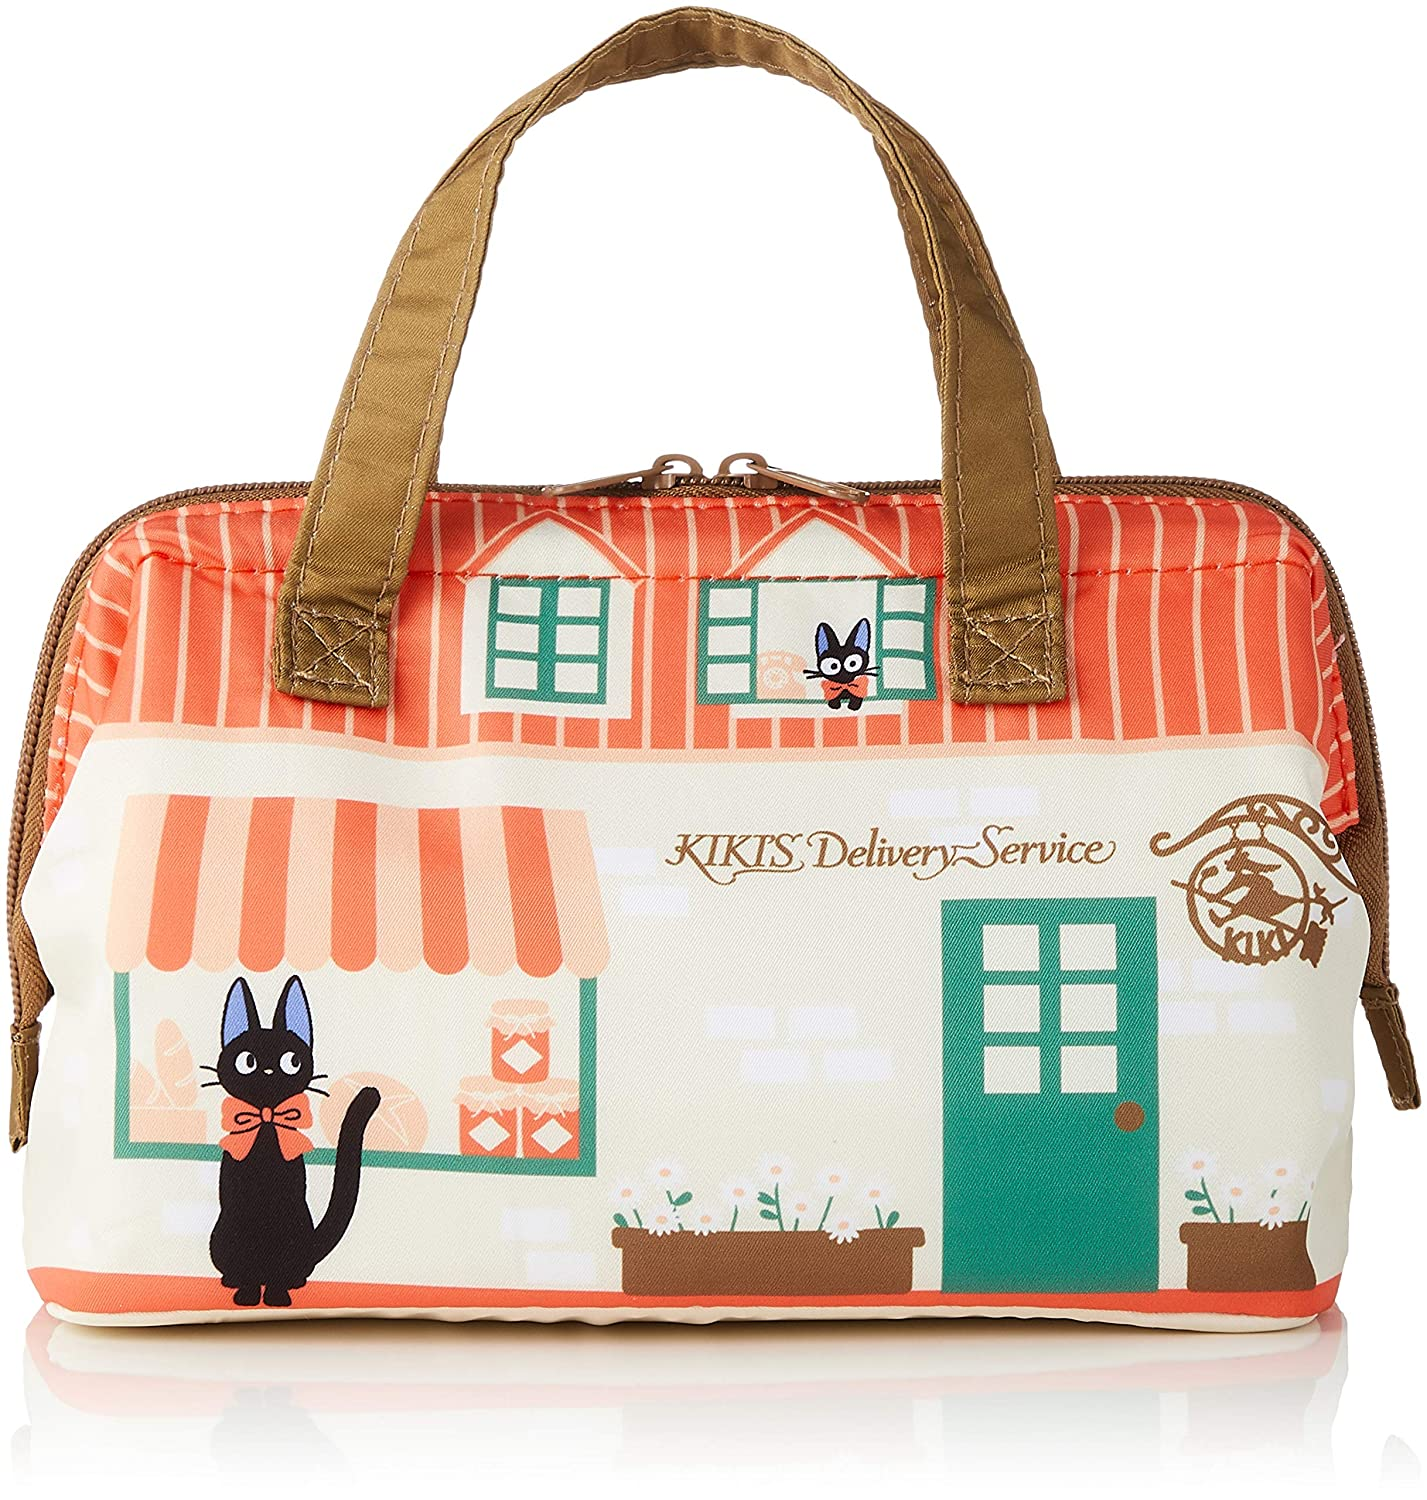 Skater Cooled Lunch Bag M Witch's Delivery Service Kiki House Studio Ghibli KGA 1 KGA1